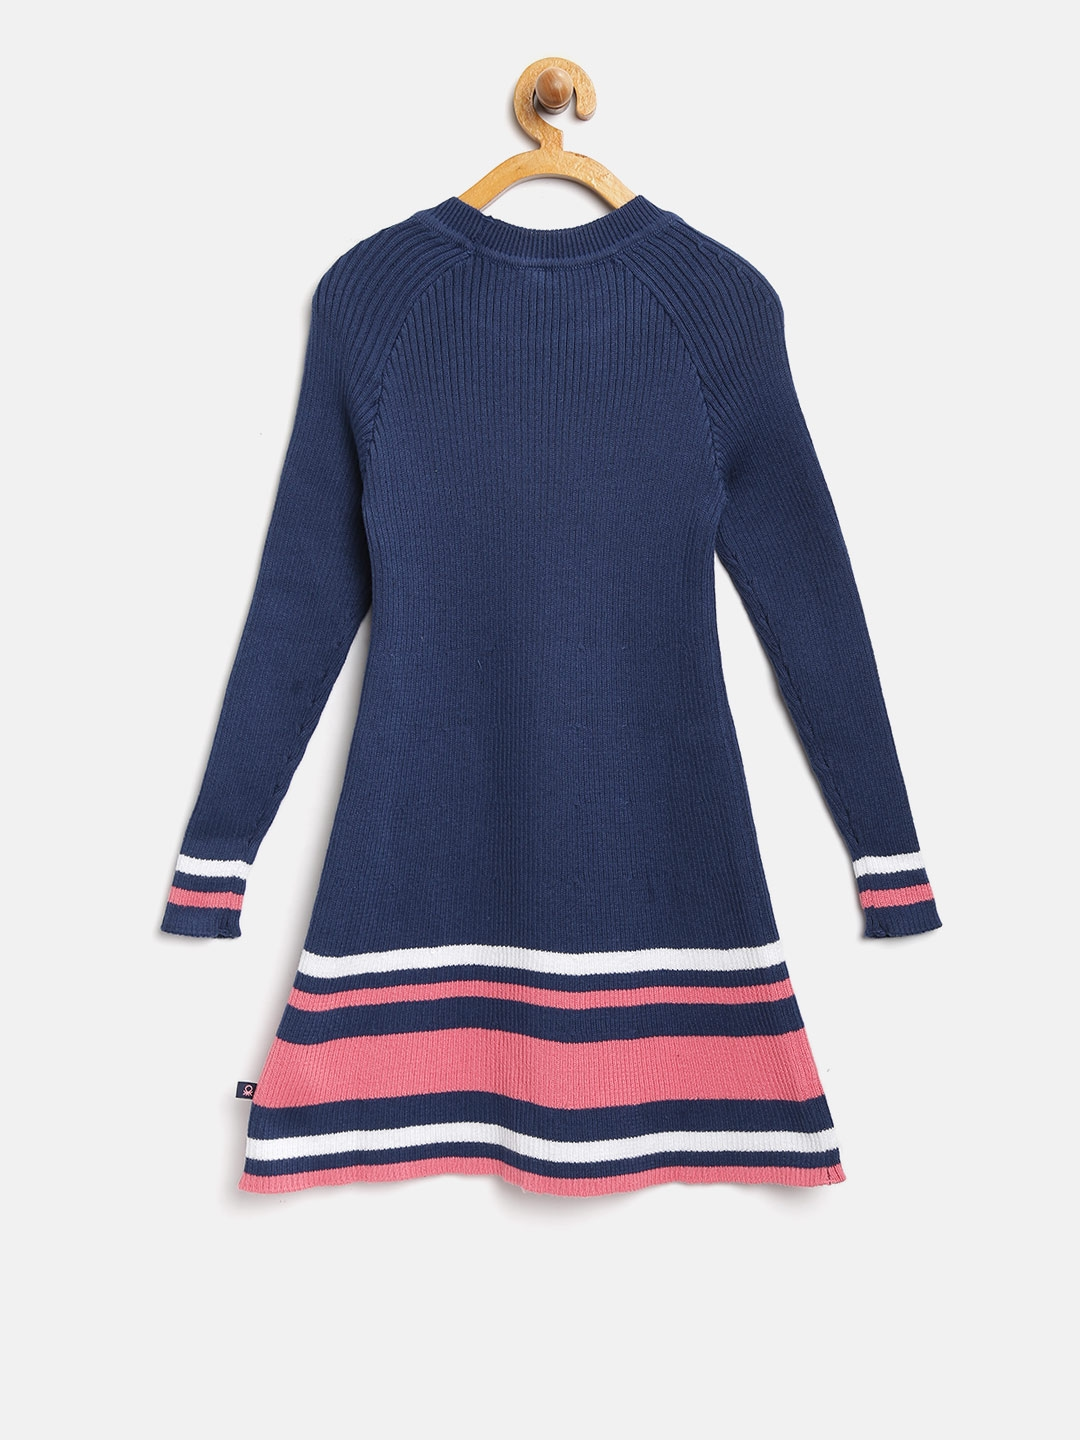 caf6a53b43c Buy United Colors Of Benetton Girls Navy Blue Self Design Sweater ...